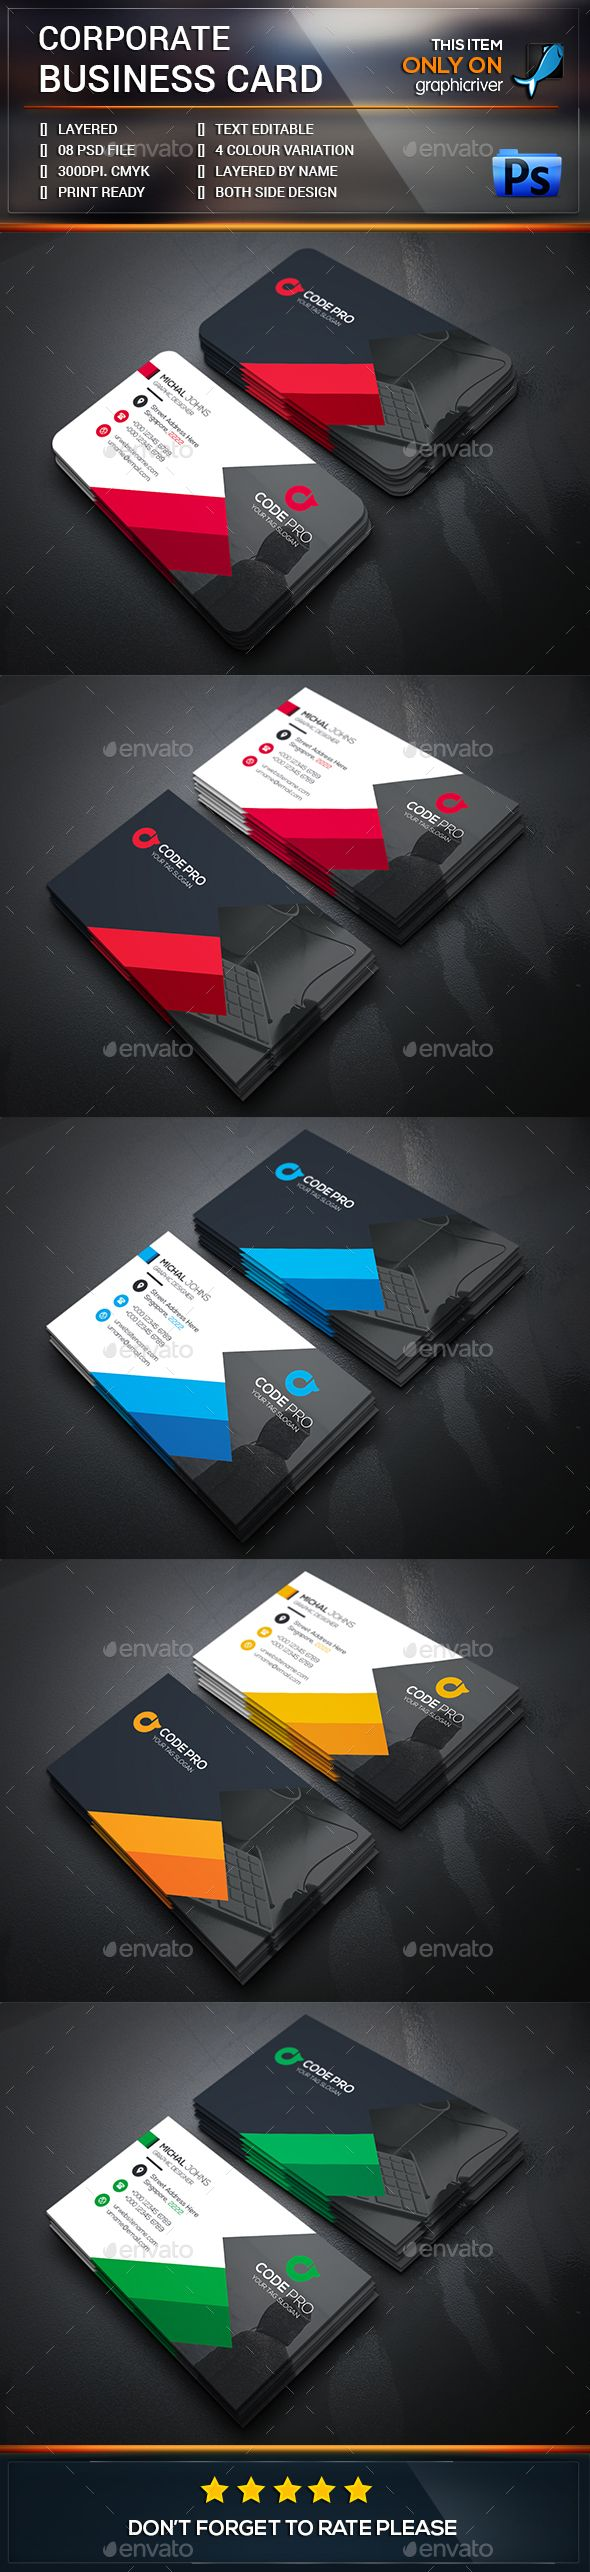 Modern Business Card — Photoshop PSD #landscape #white • Available here → https://graphicriver.net/item/modern-business-card/13587606?ref=pxcr